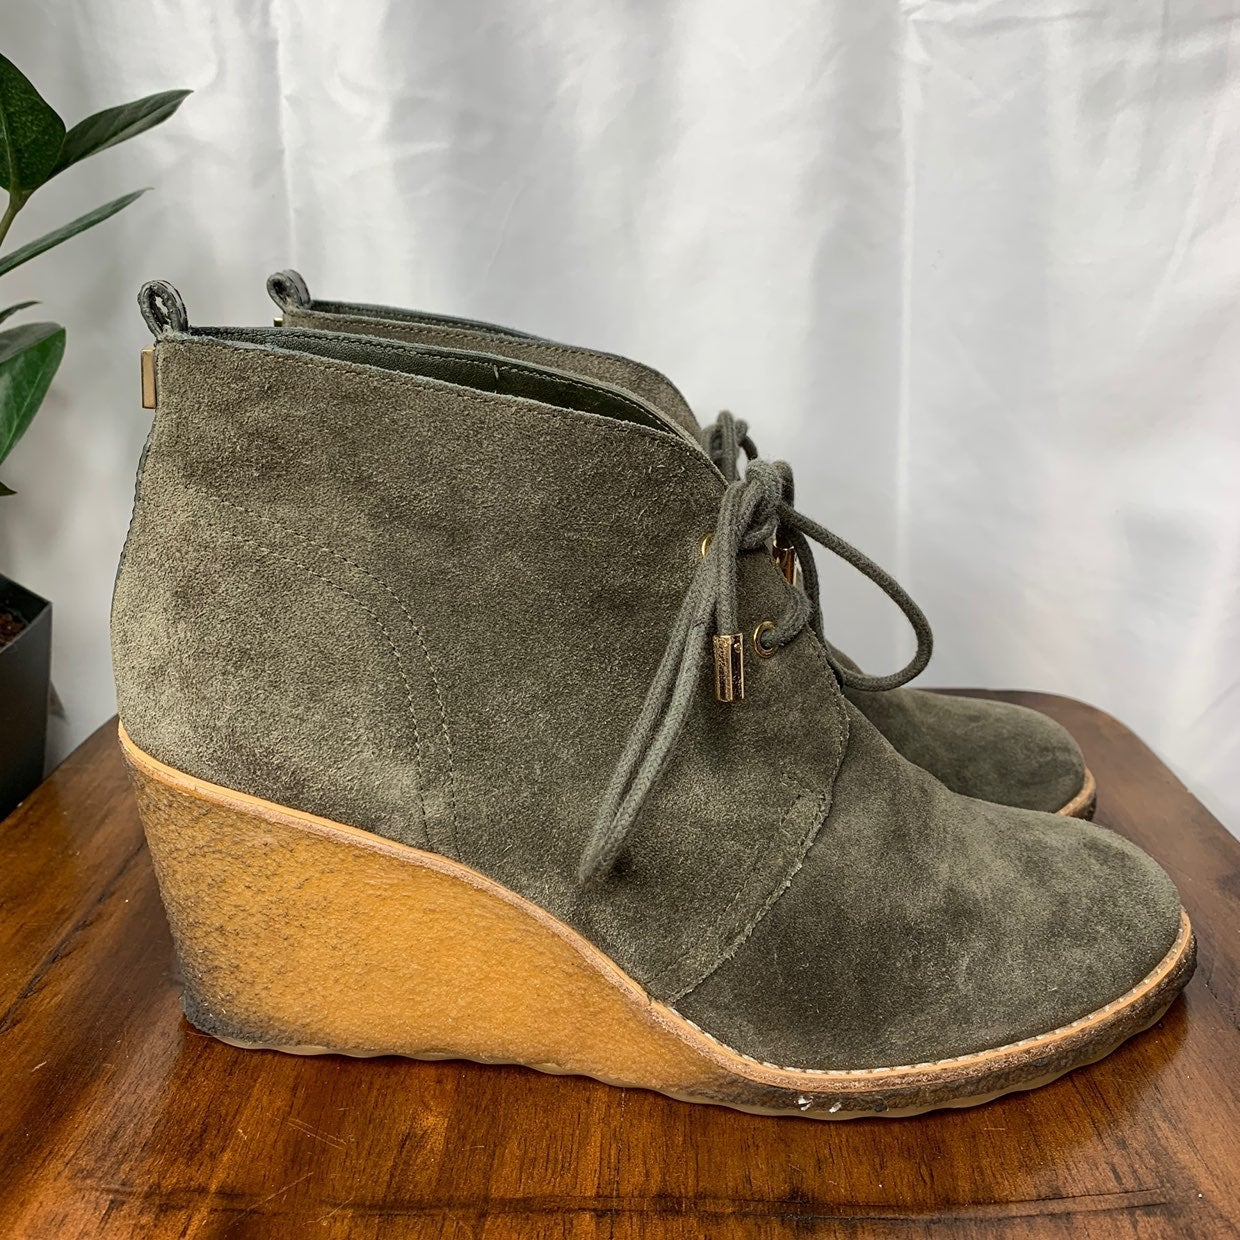 Tory Burch army green leather wedges